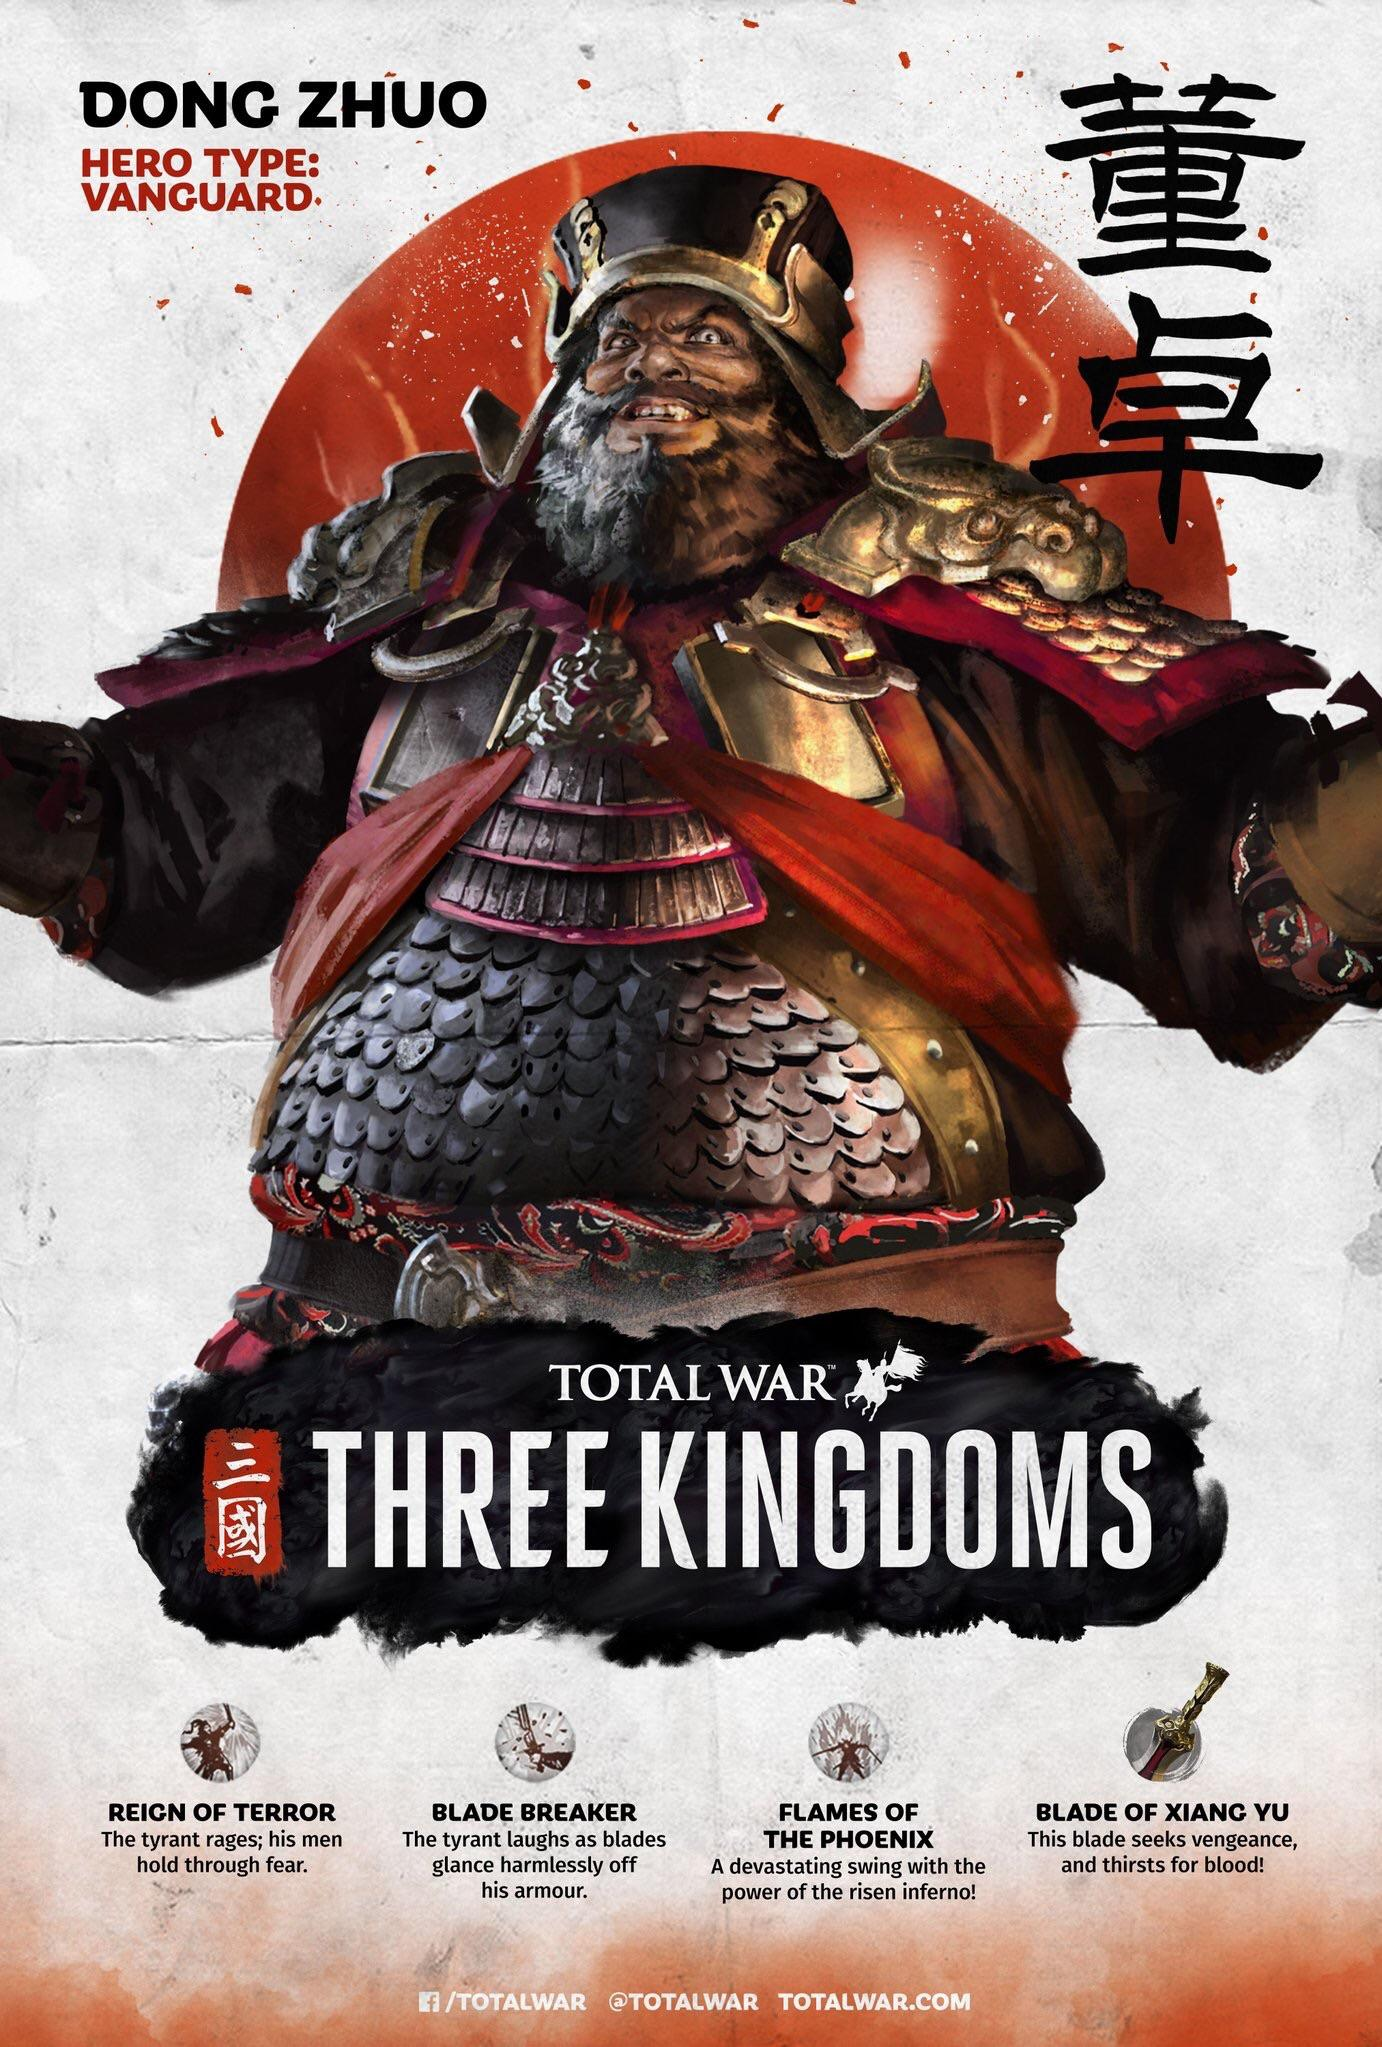 So is this Dong Zhuo poster legit? — Total War Forums